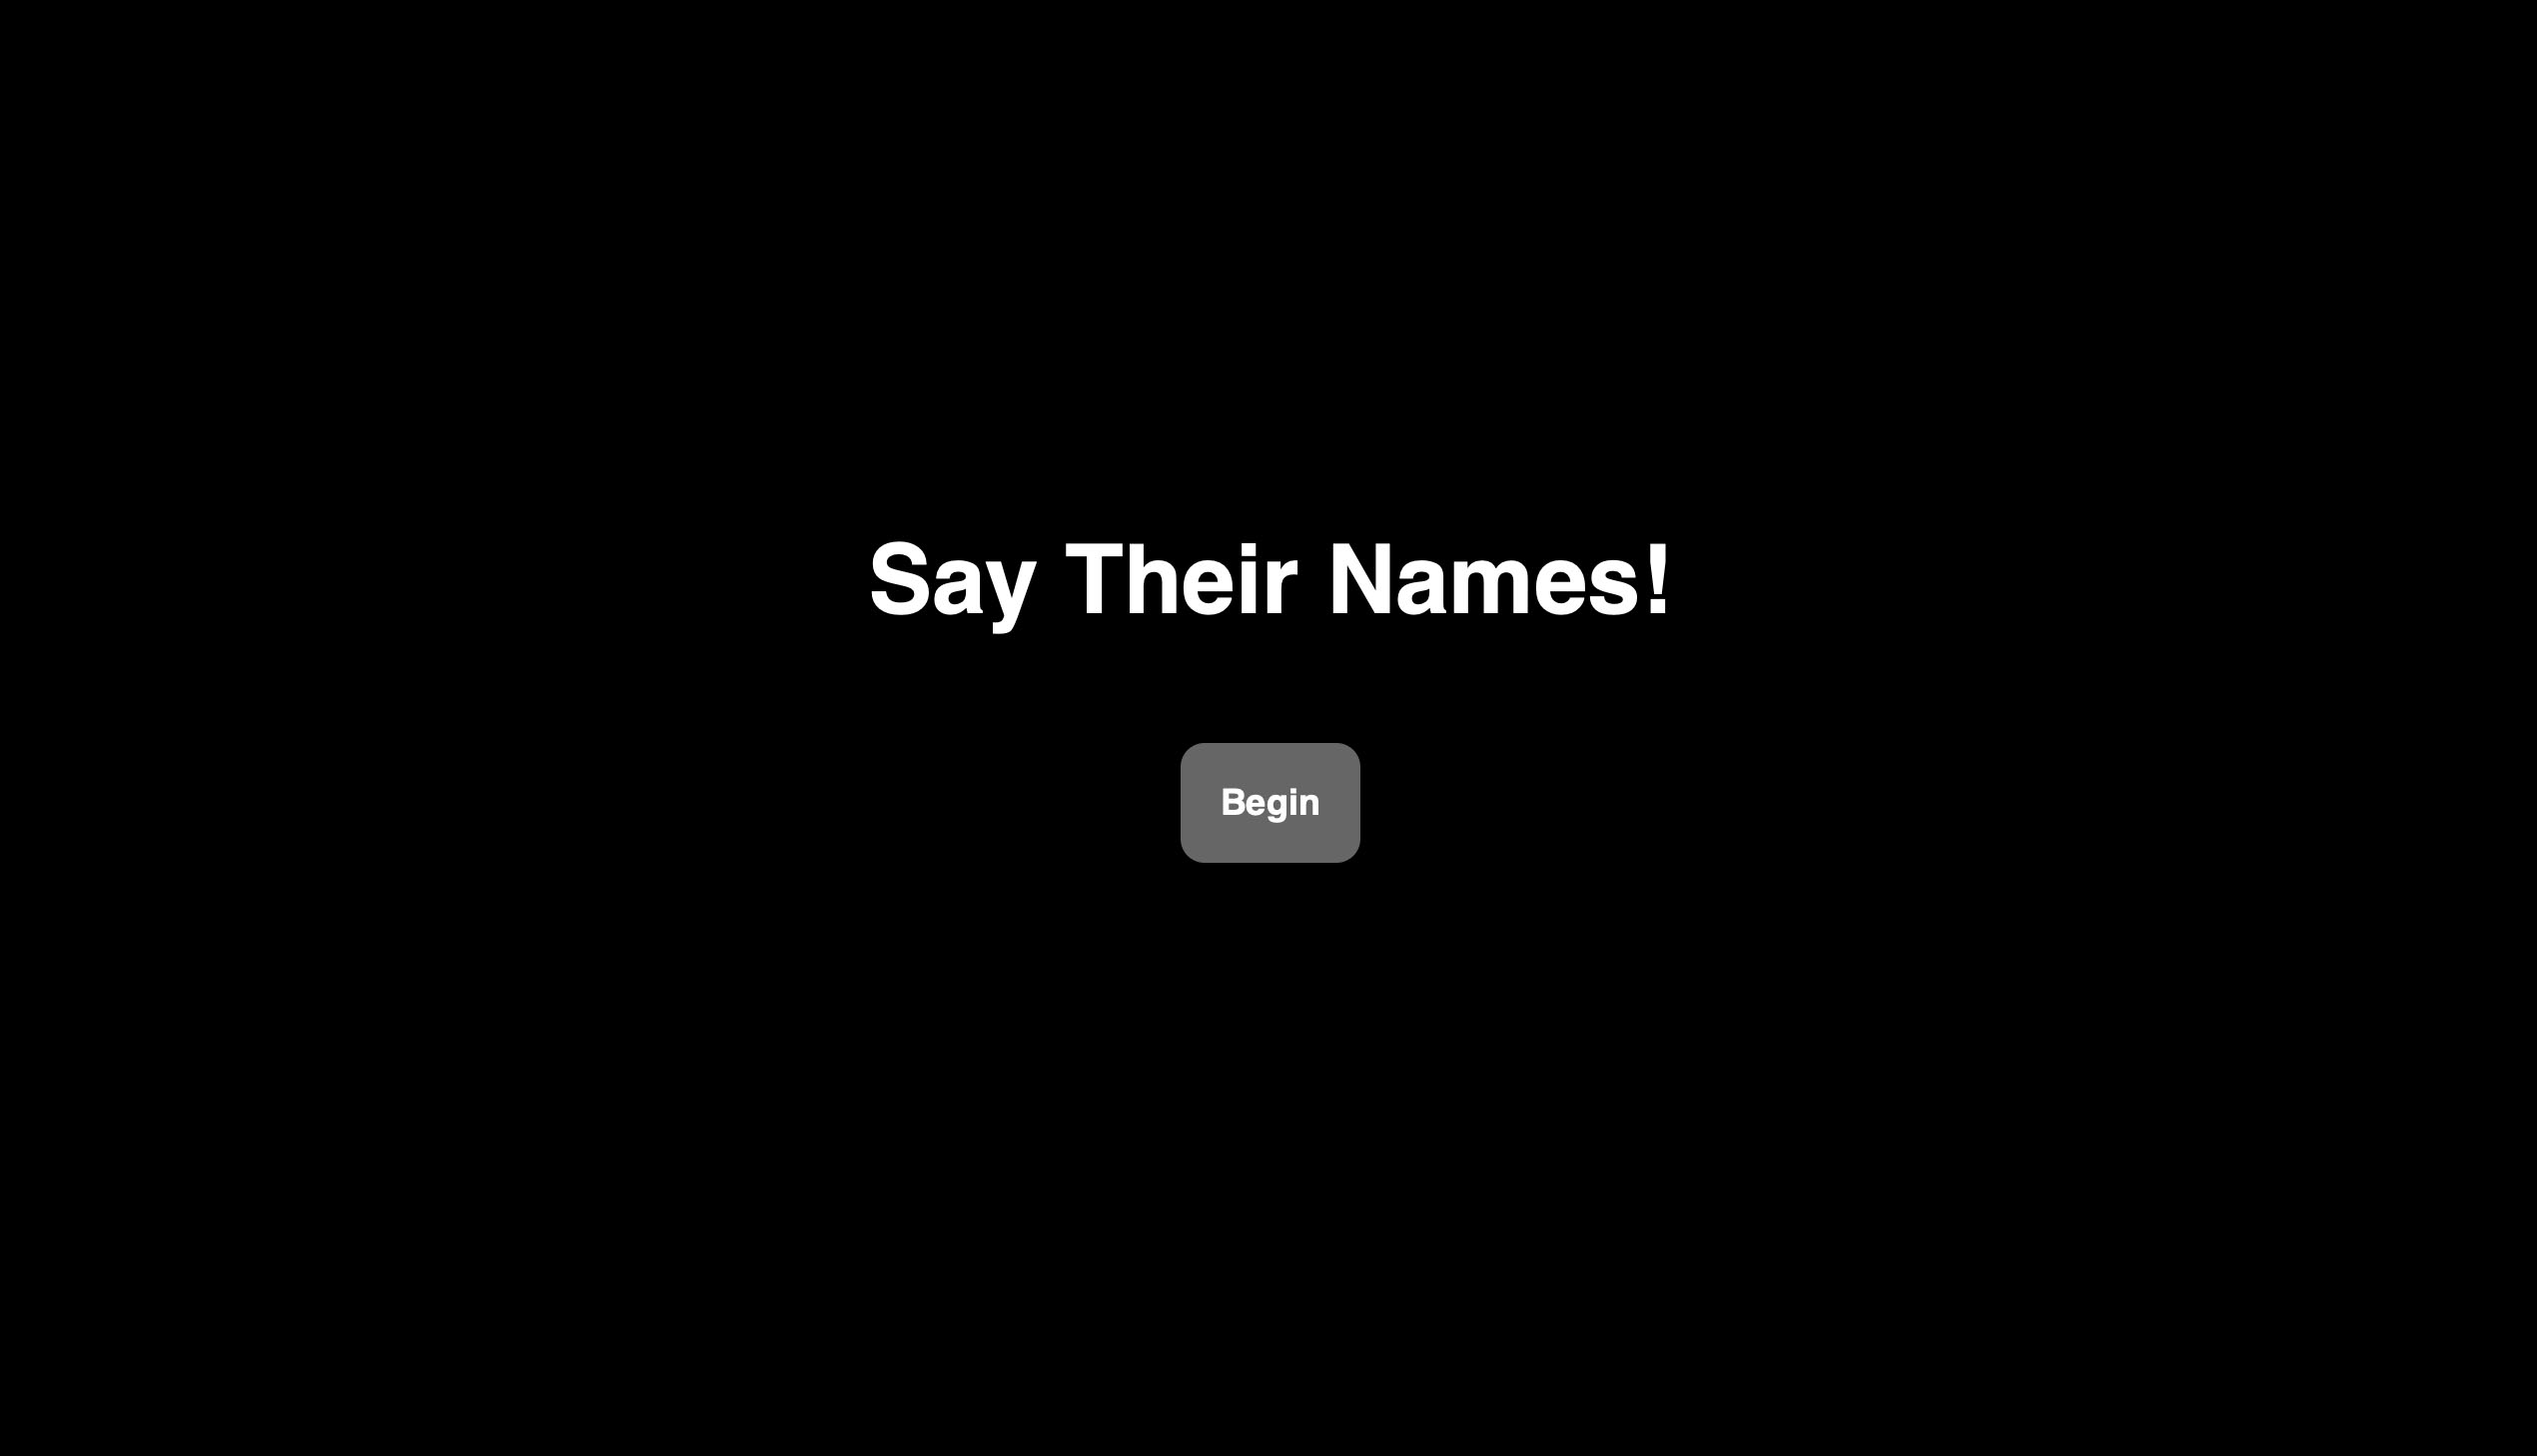 Say Their Names text and Begin button